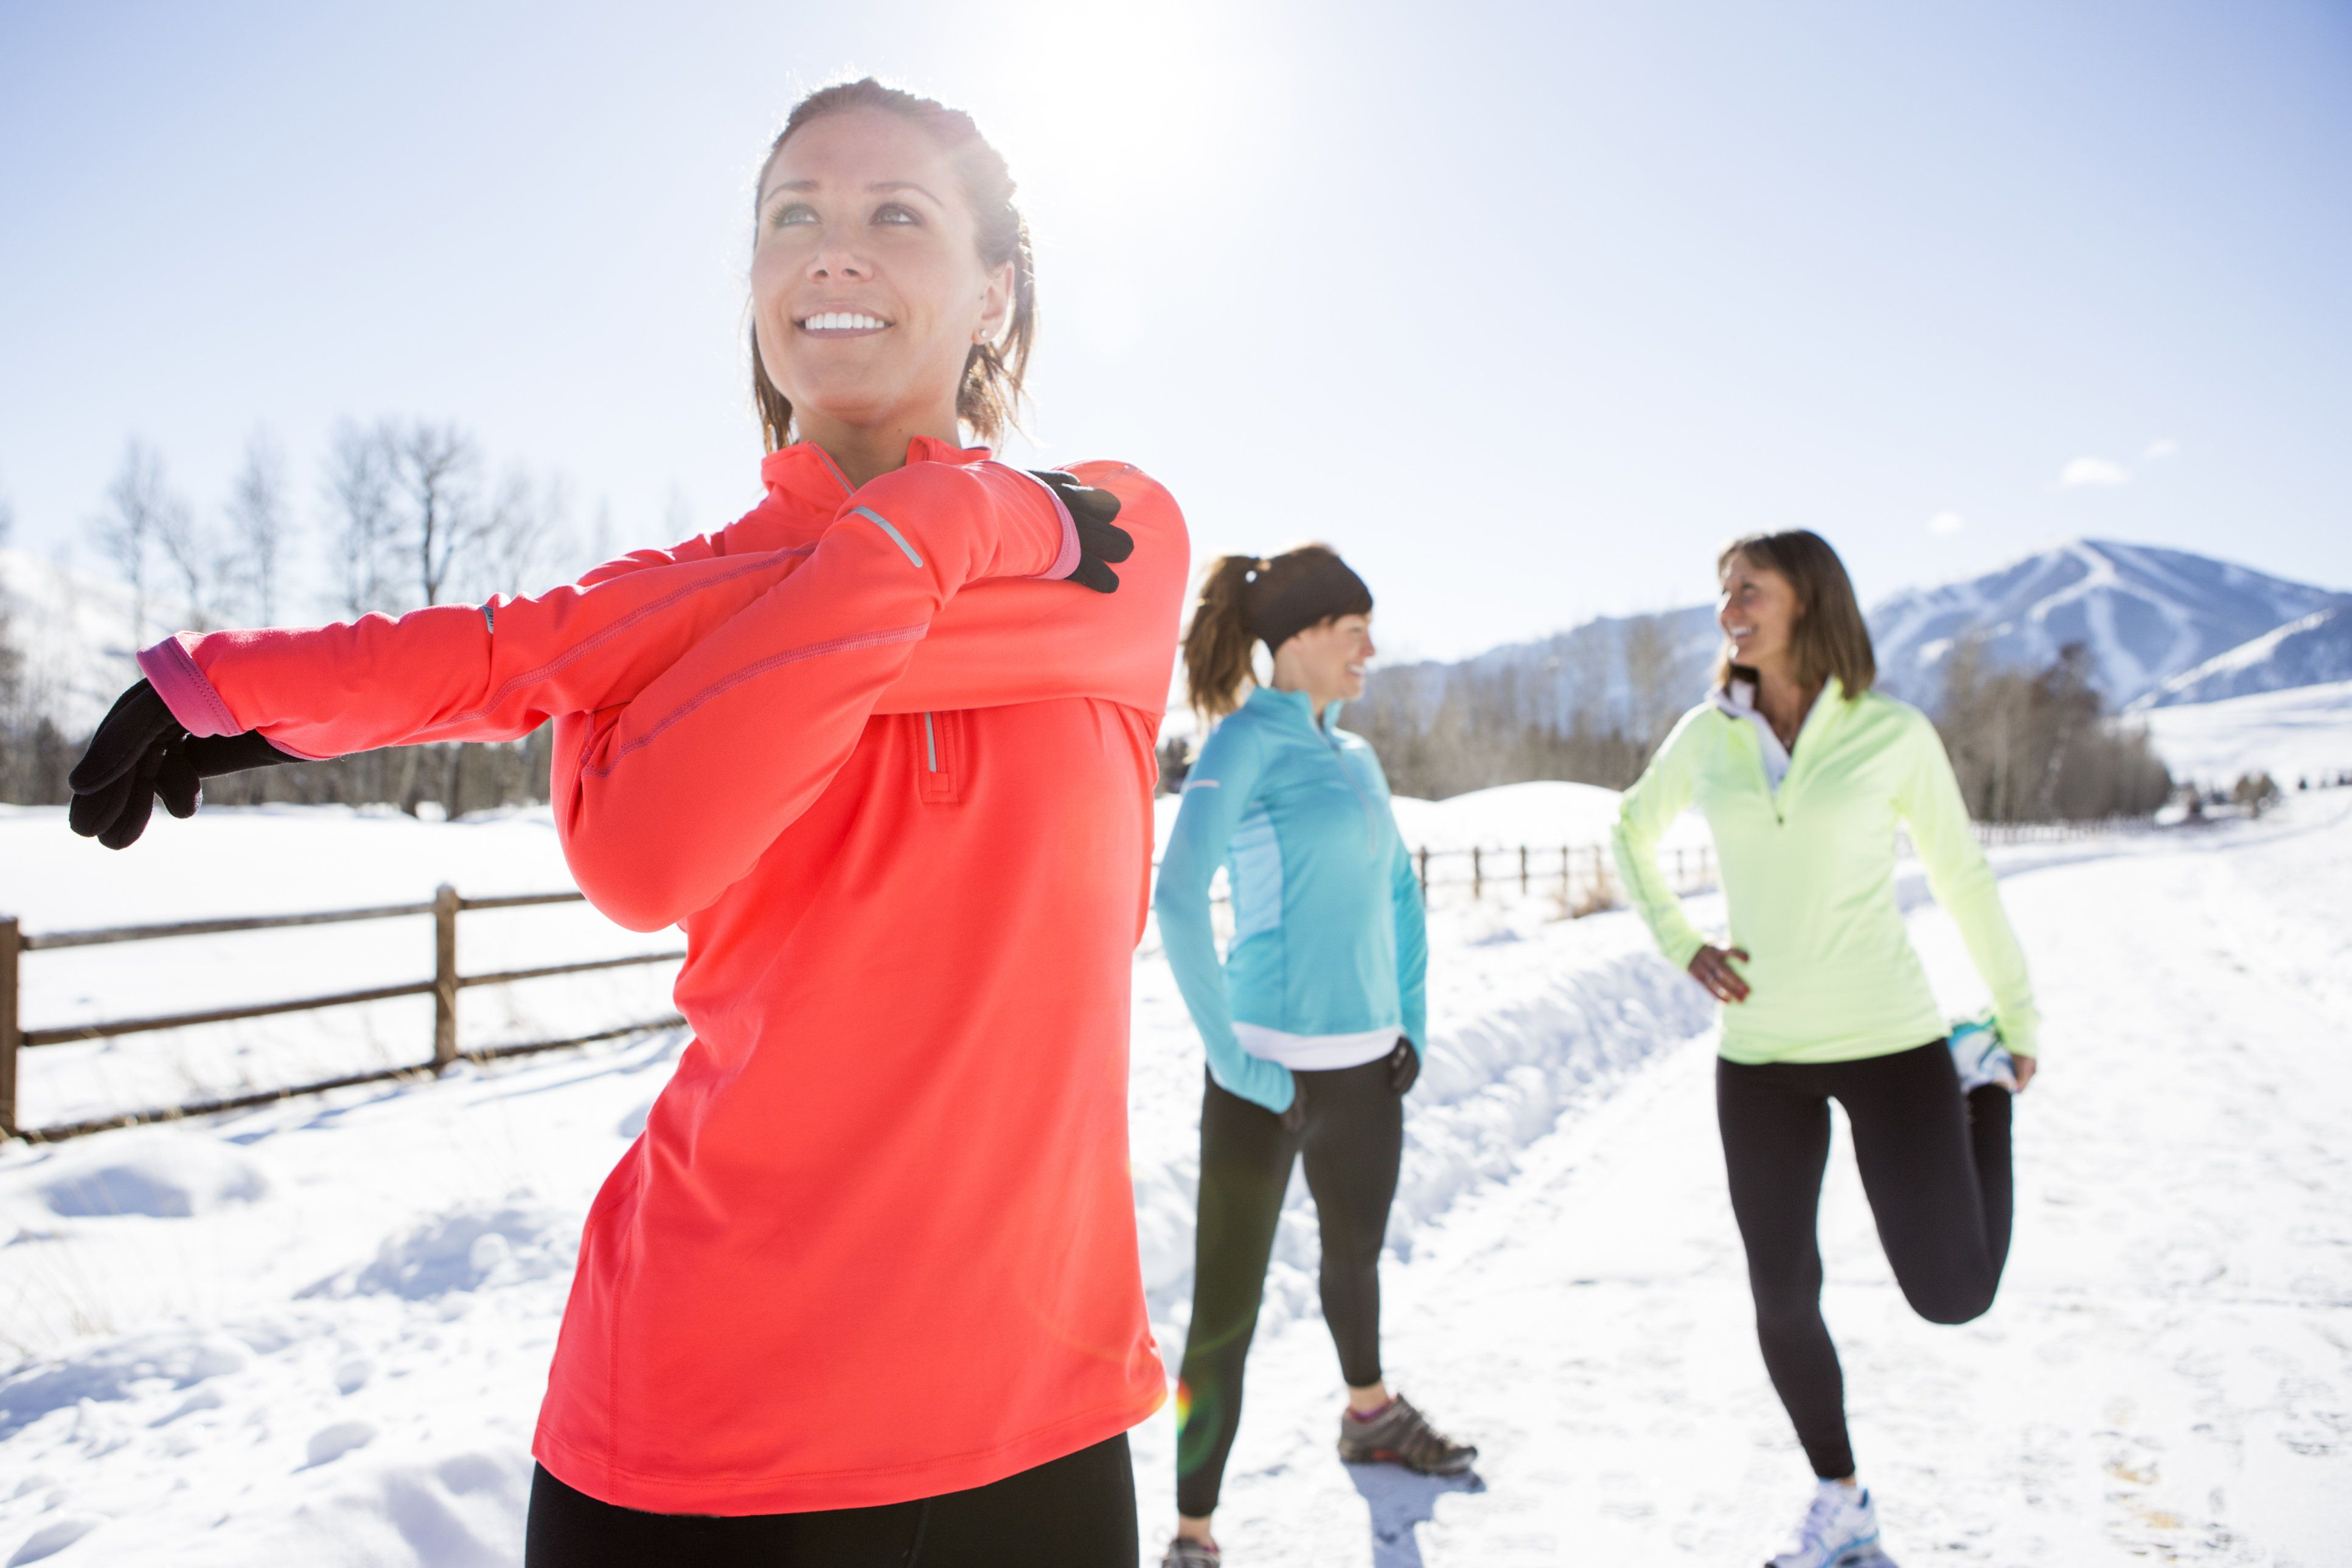 Three women jogging a snowy path in Sun Valley on a beautiful winter day.